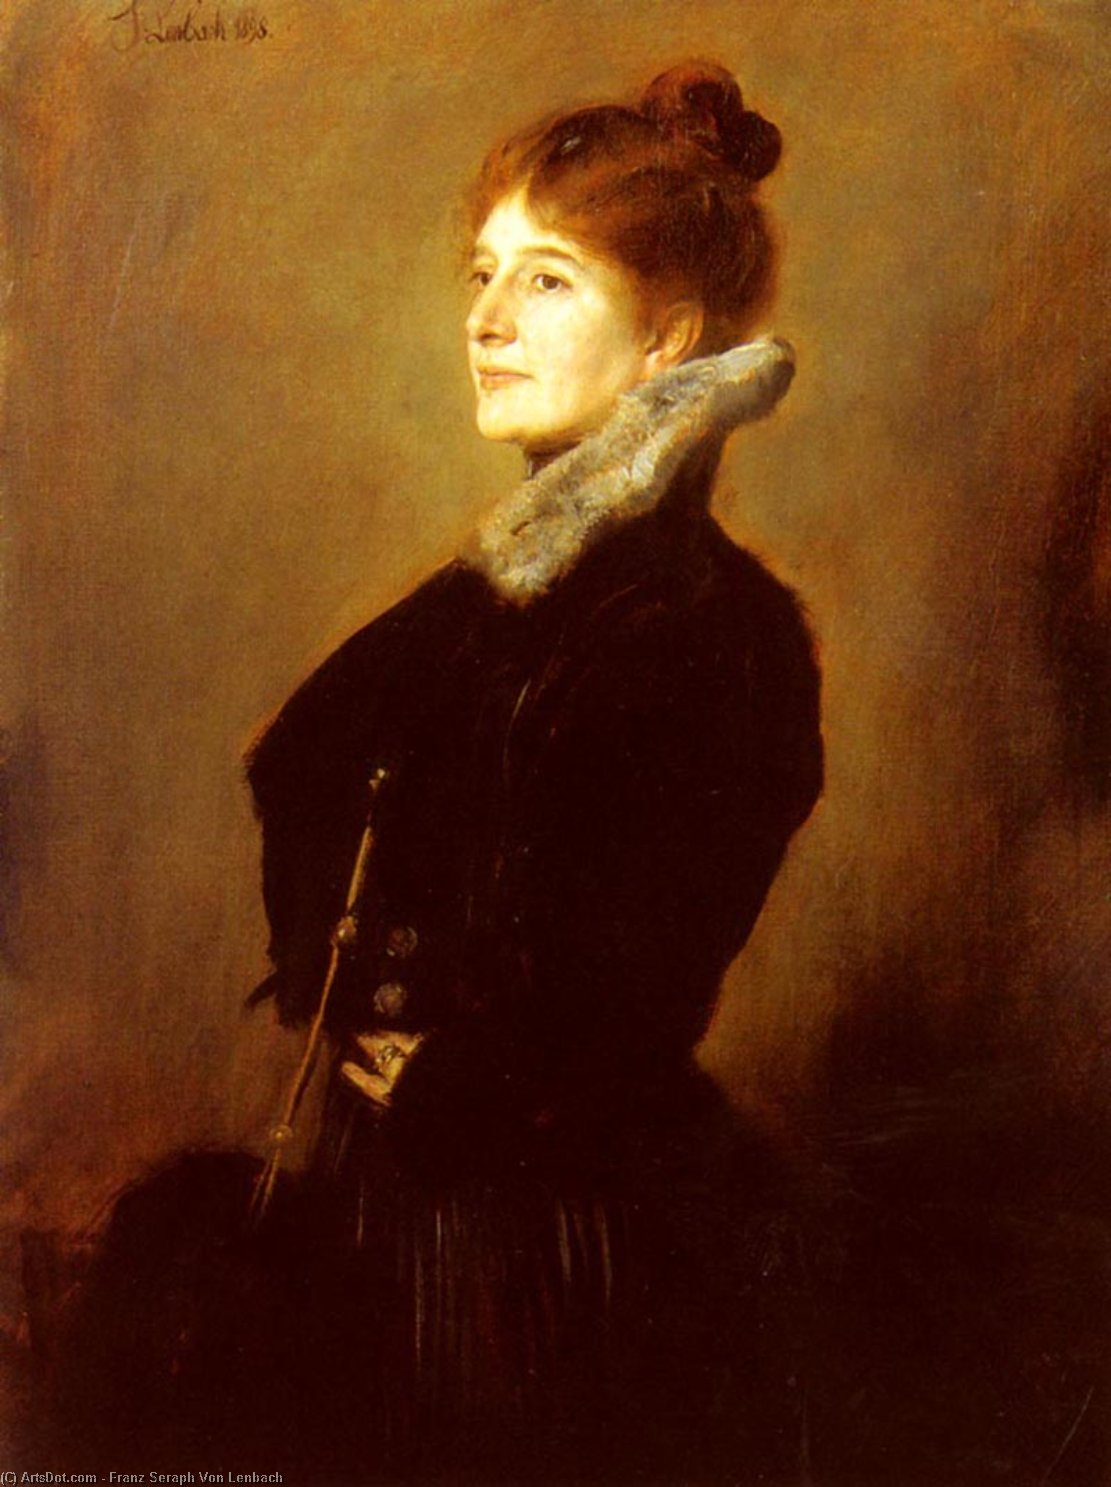 Portrait Of A Lady Wearing A Black Coat With Fur Collar by Franz Seraph Von Lenbach (1836-1904, Germany)